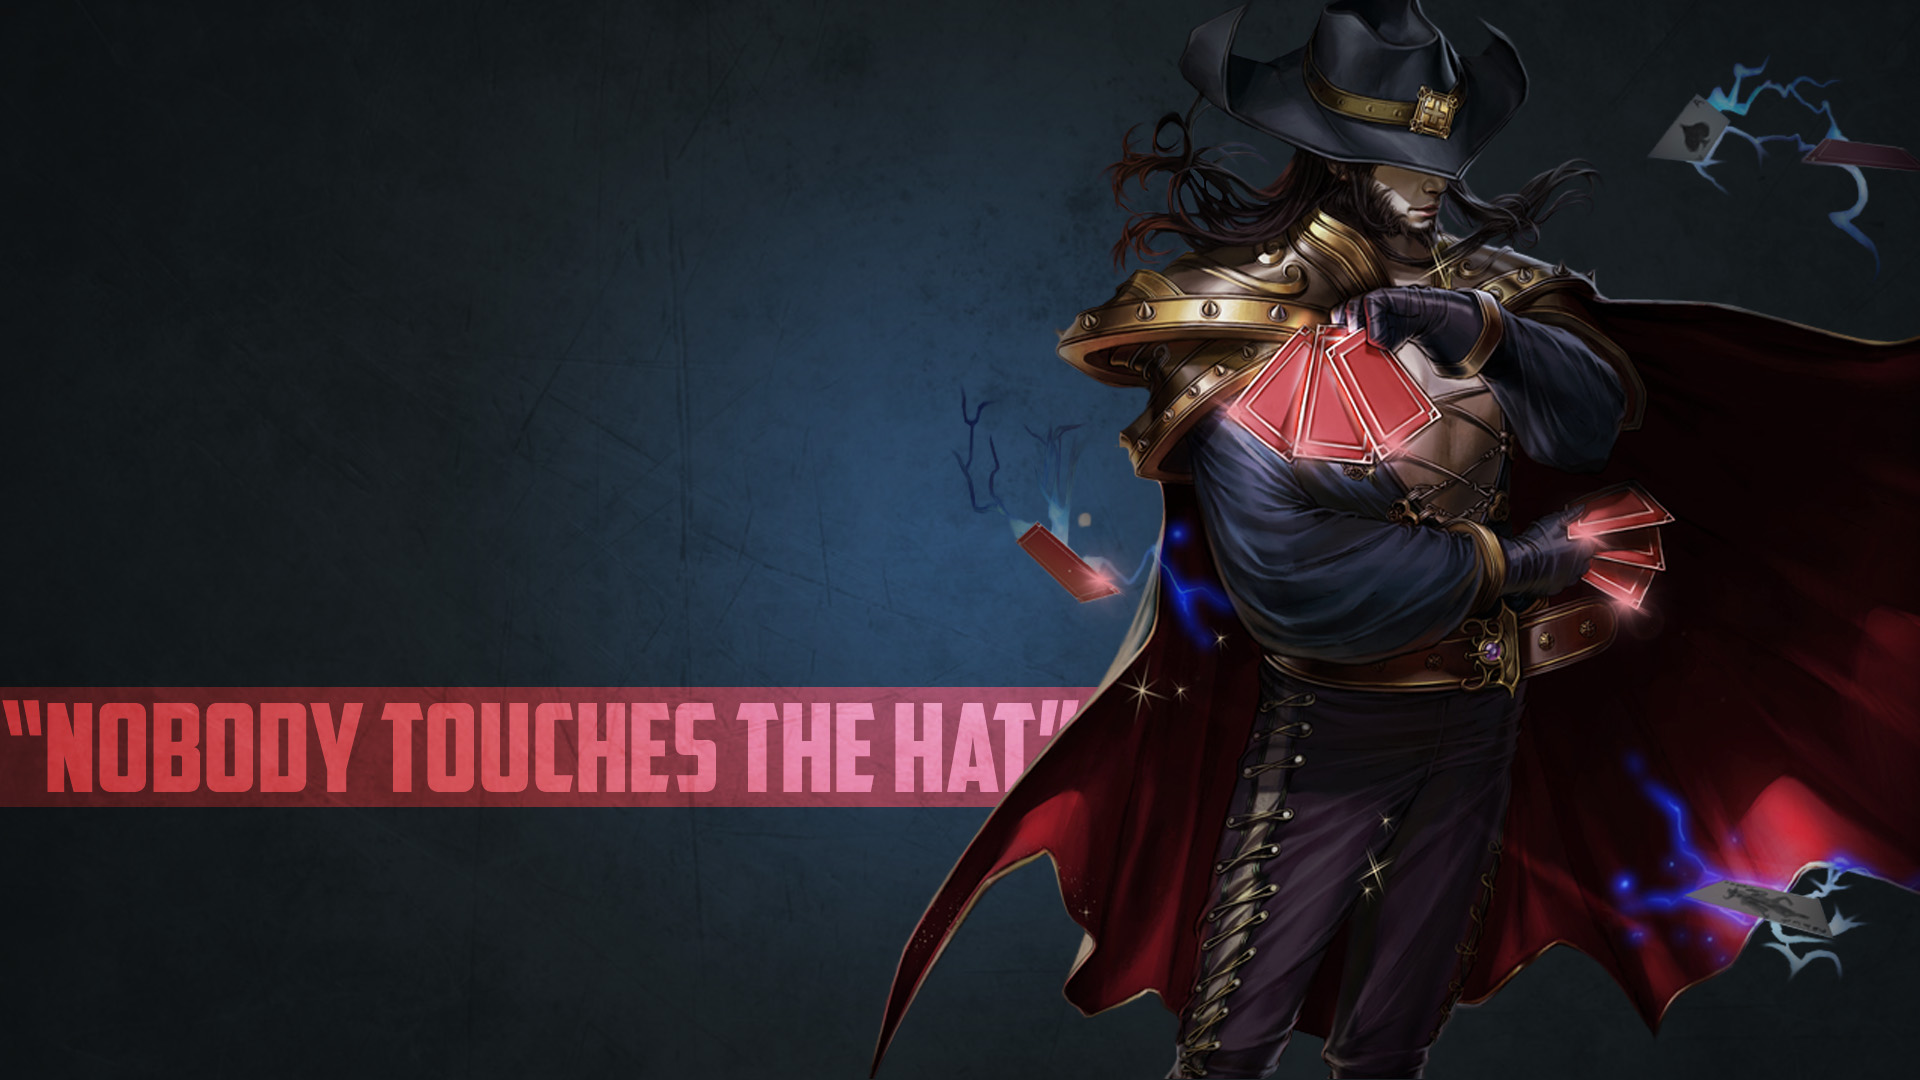 Twisted Fate wallpaper